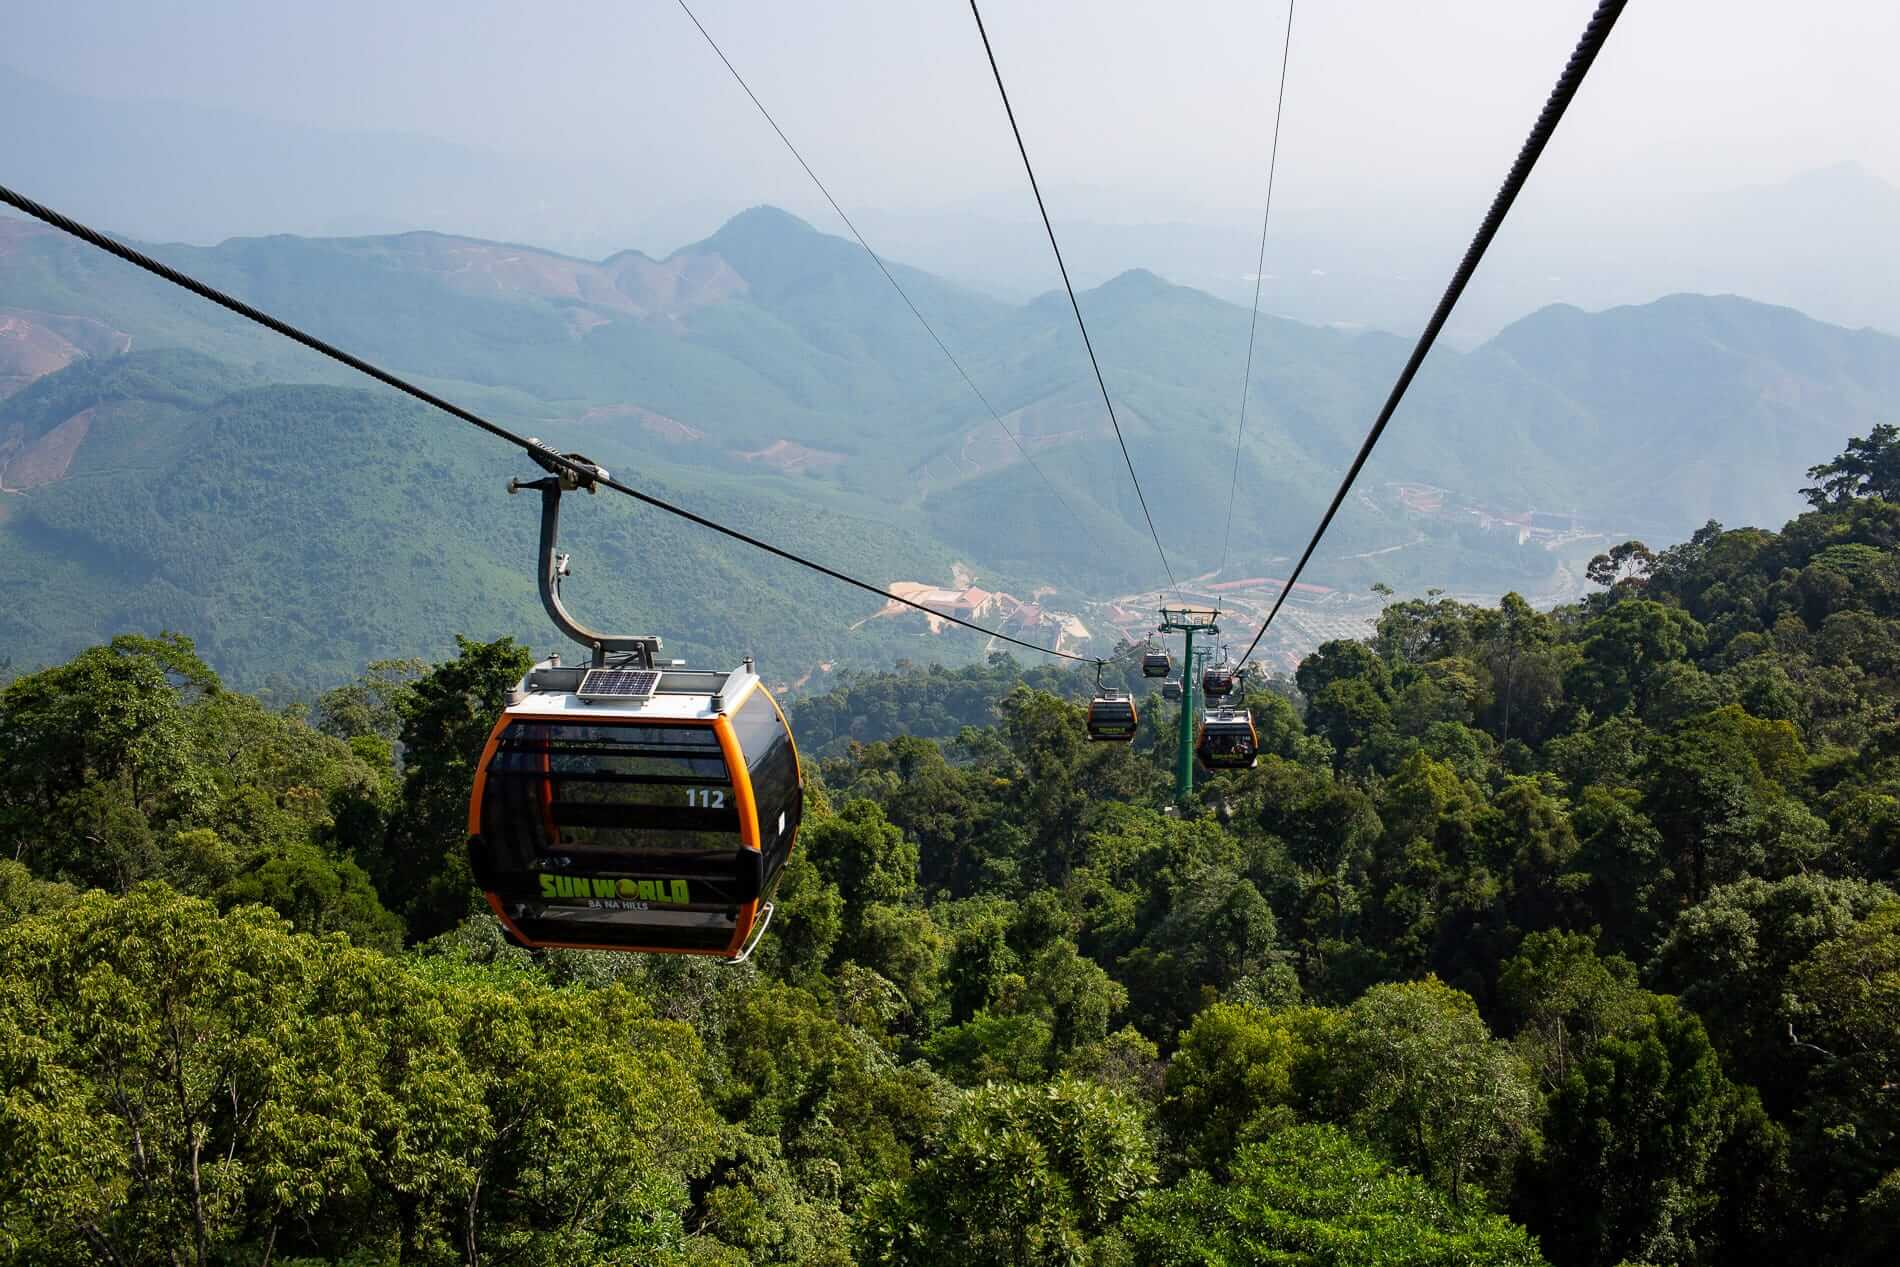 the cable car going to the mountain of Ba Na Hills